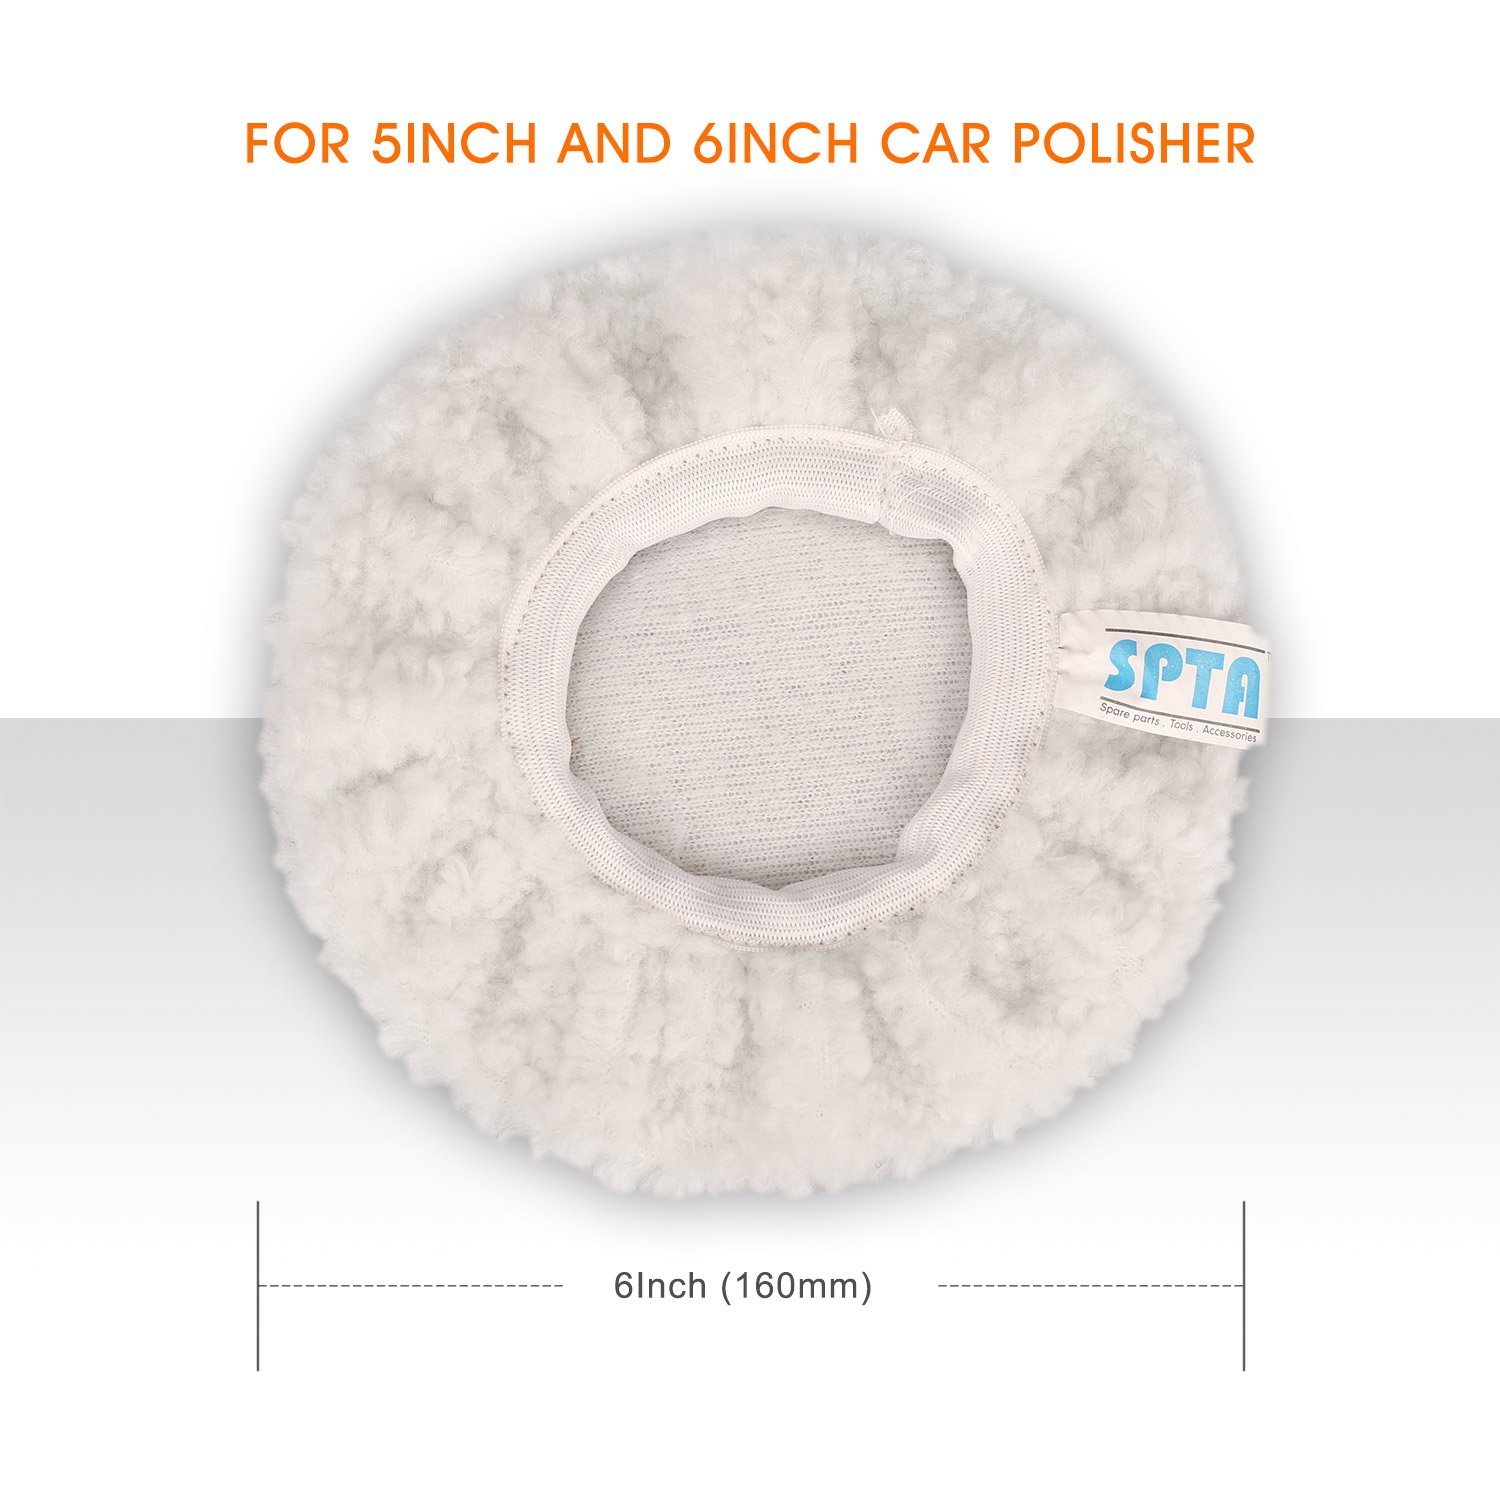 5 to 6 Inch SPTA Car Polisher Bonnet Polishing Bonnet Pad Max Waxer Pads for Most Car Polishers Pack of 5Pcs